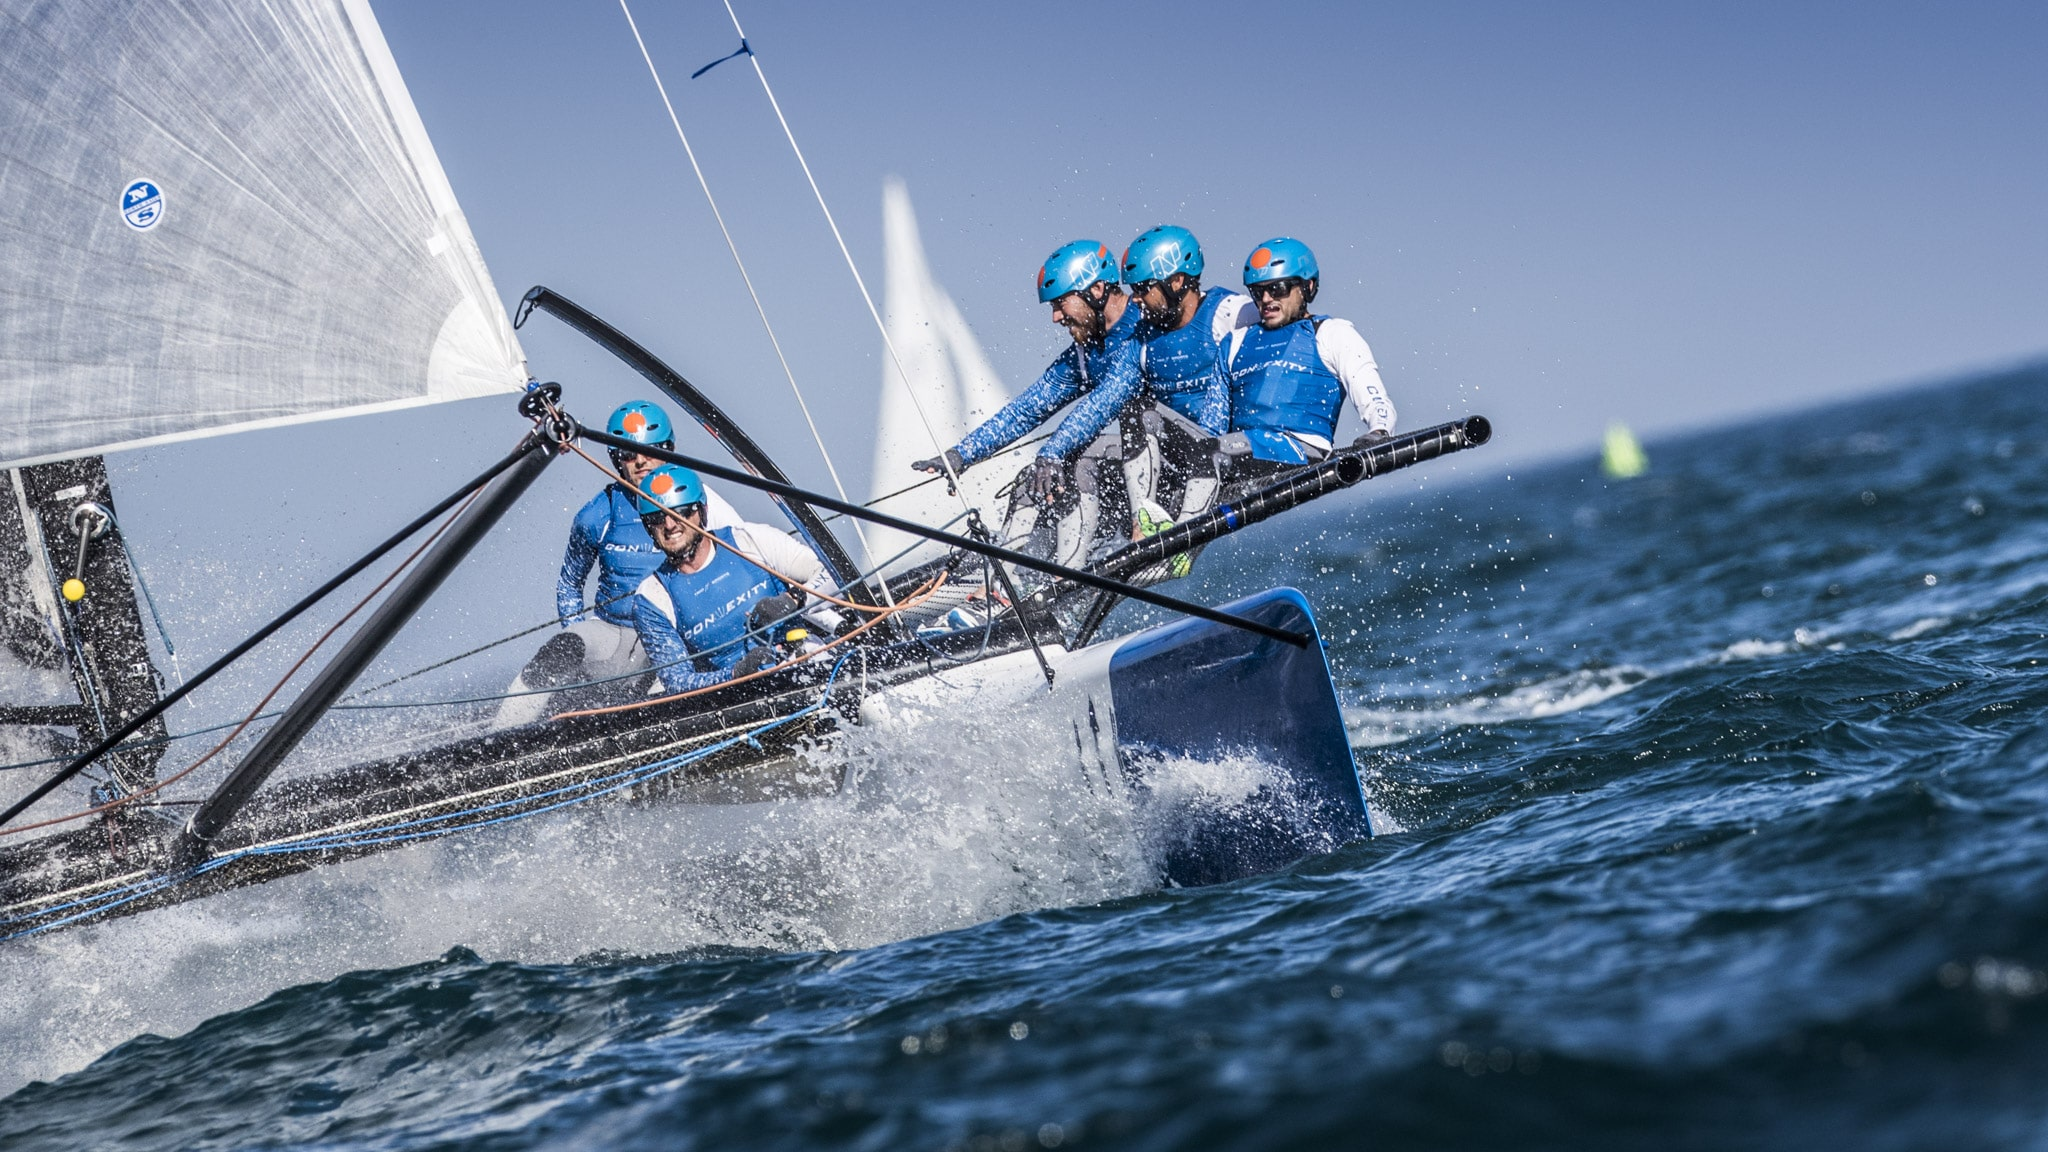 Locals Snatch Victory in Final Leg of Regatta to Close Out ...